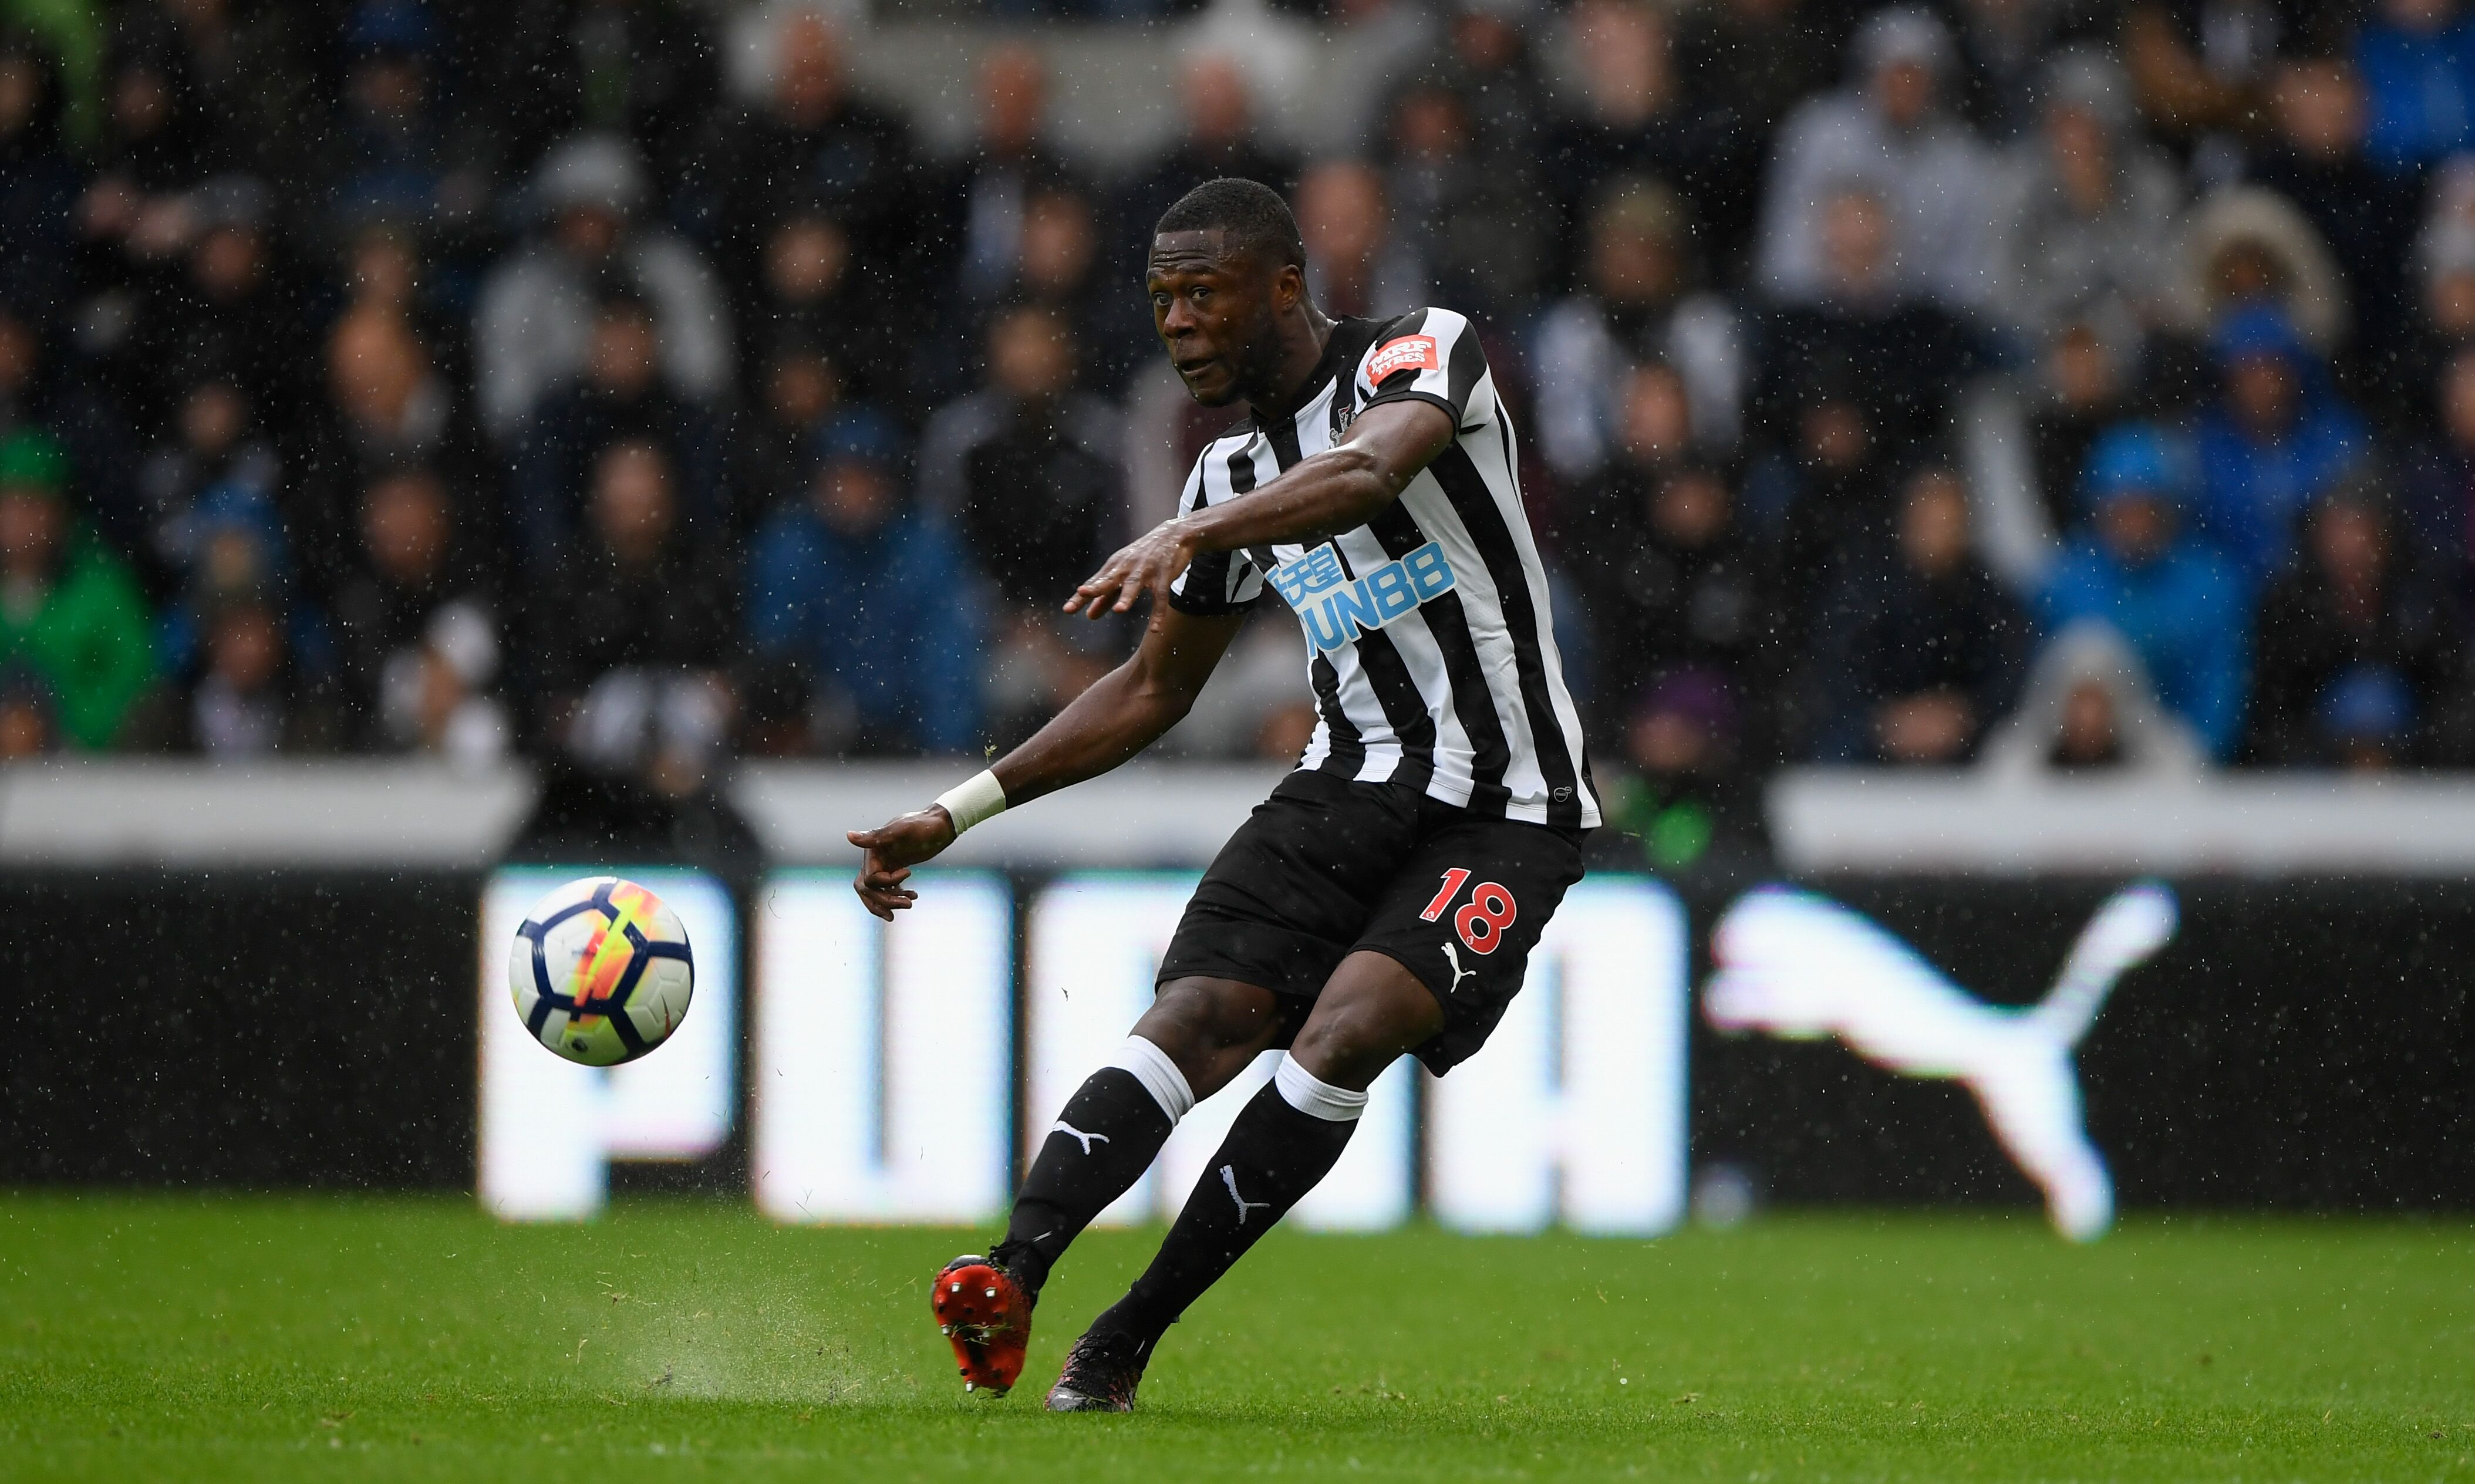 Celtic linked to young Newcastle defender